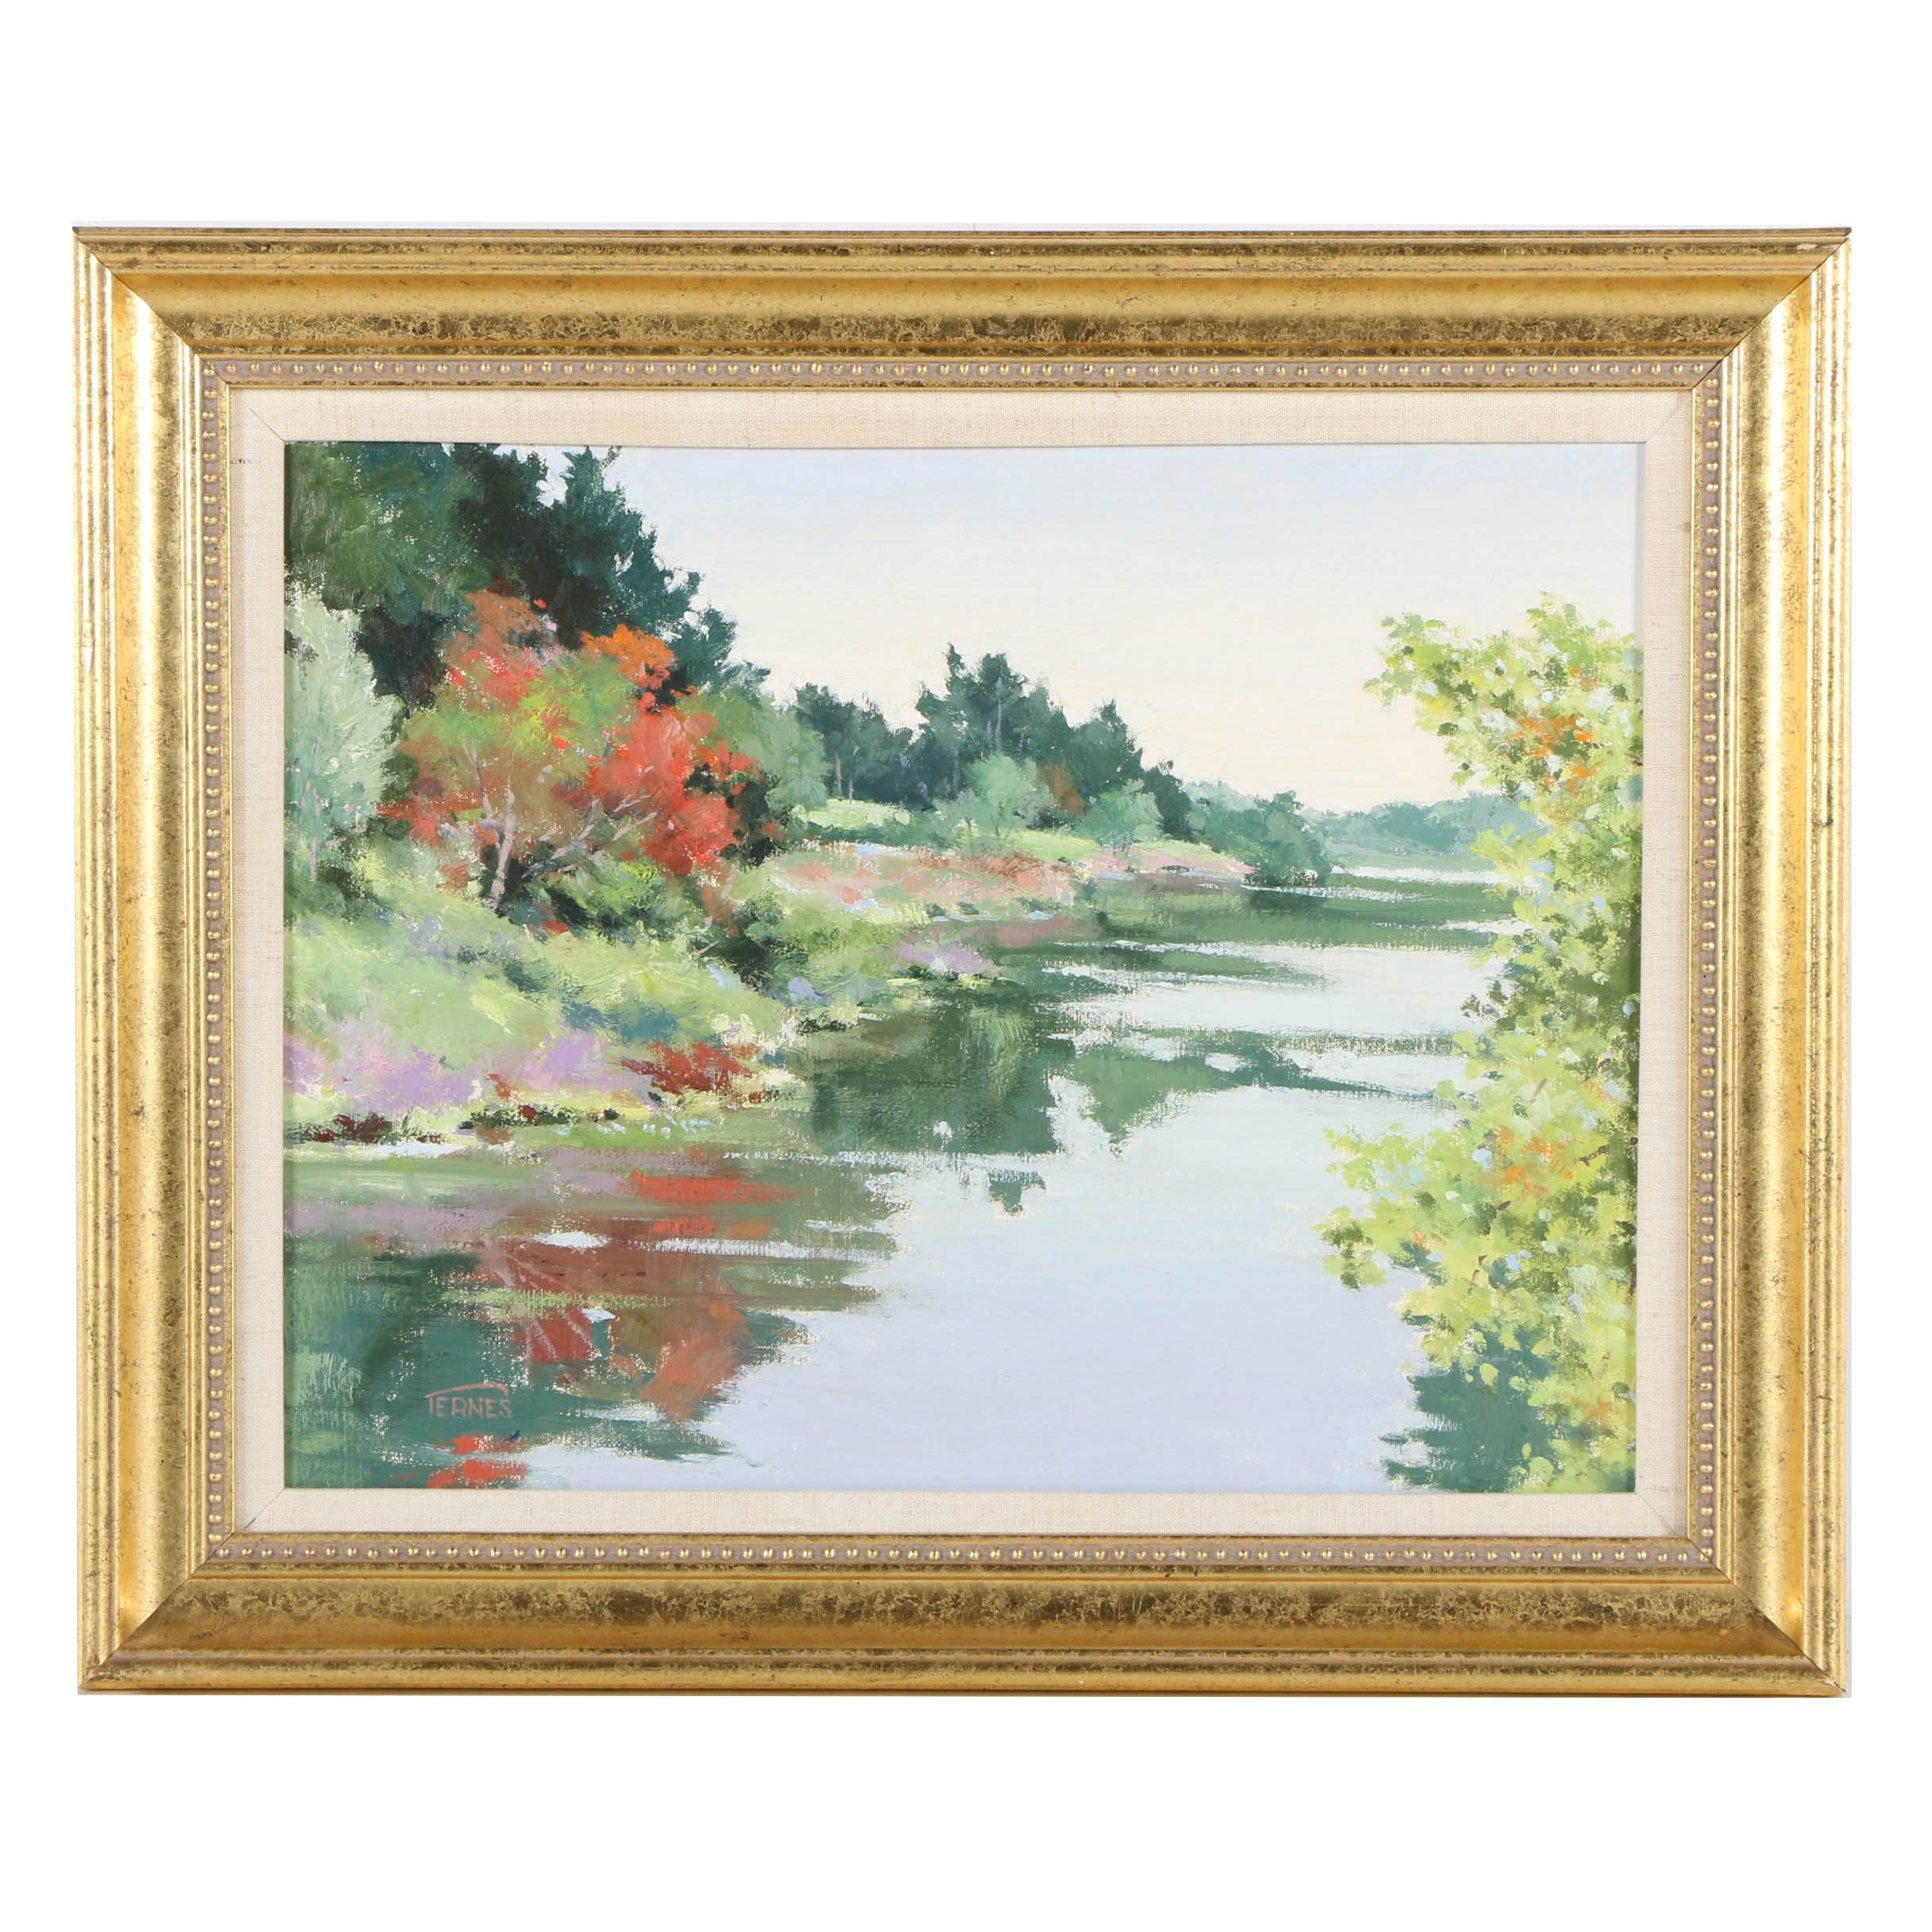 Ternes Signed Oil Painting on Canvas of Charles River